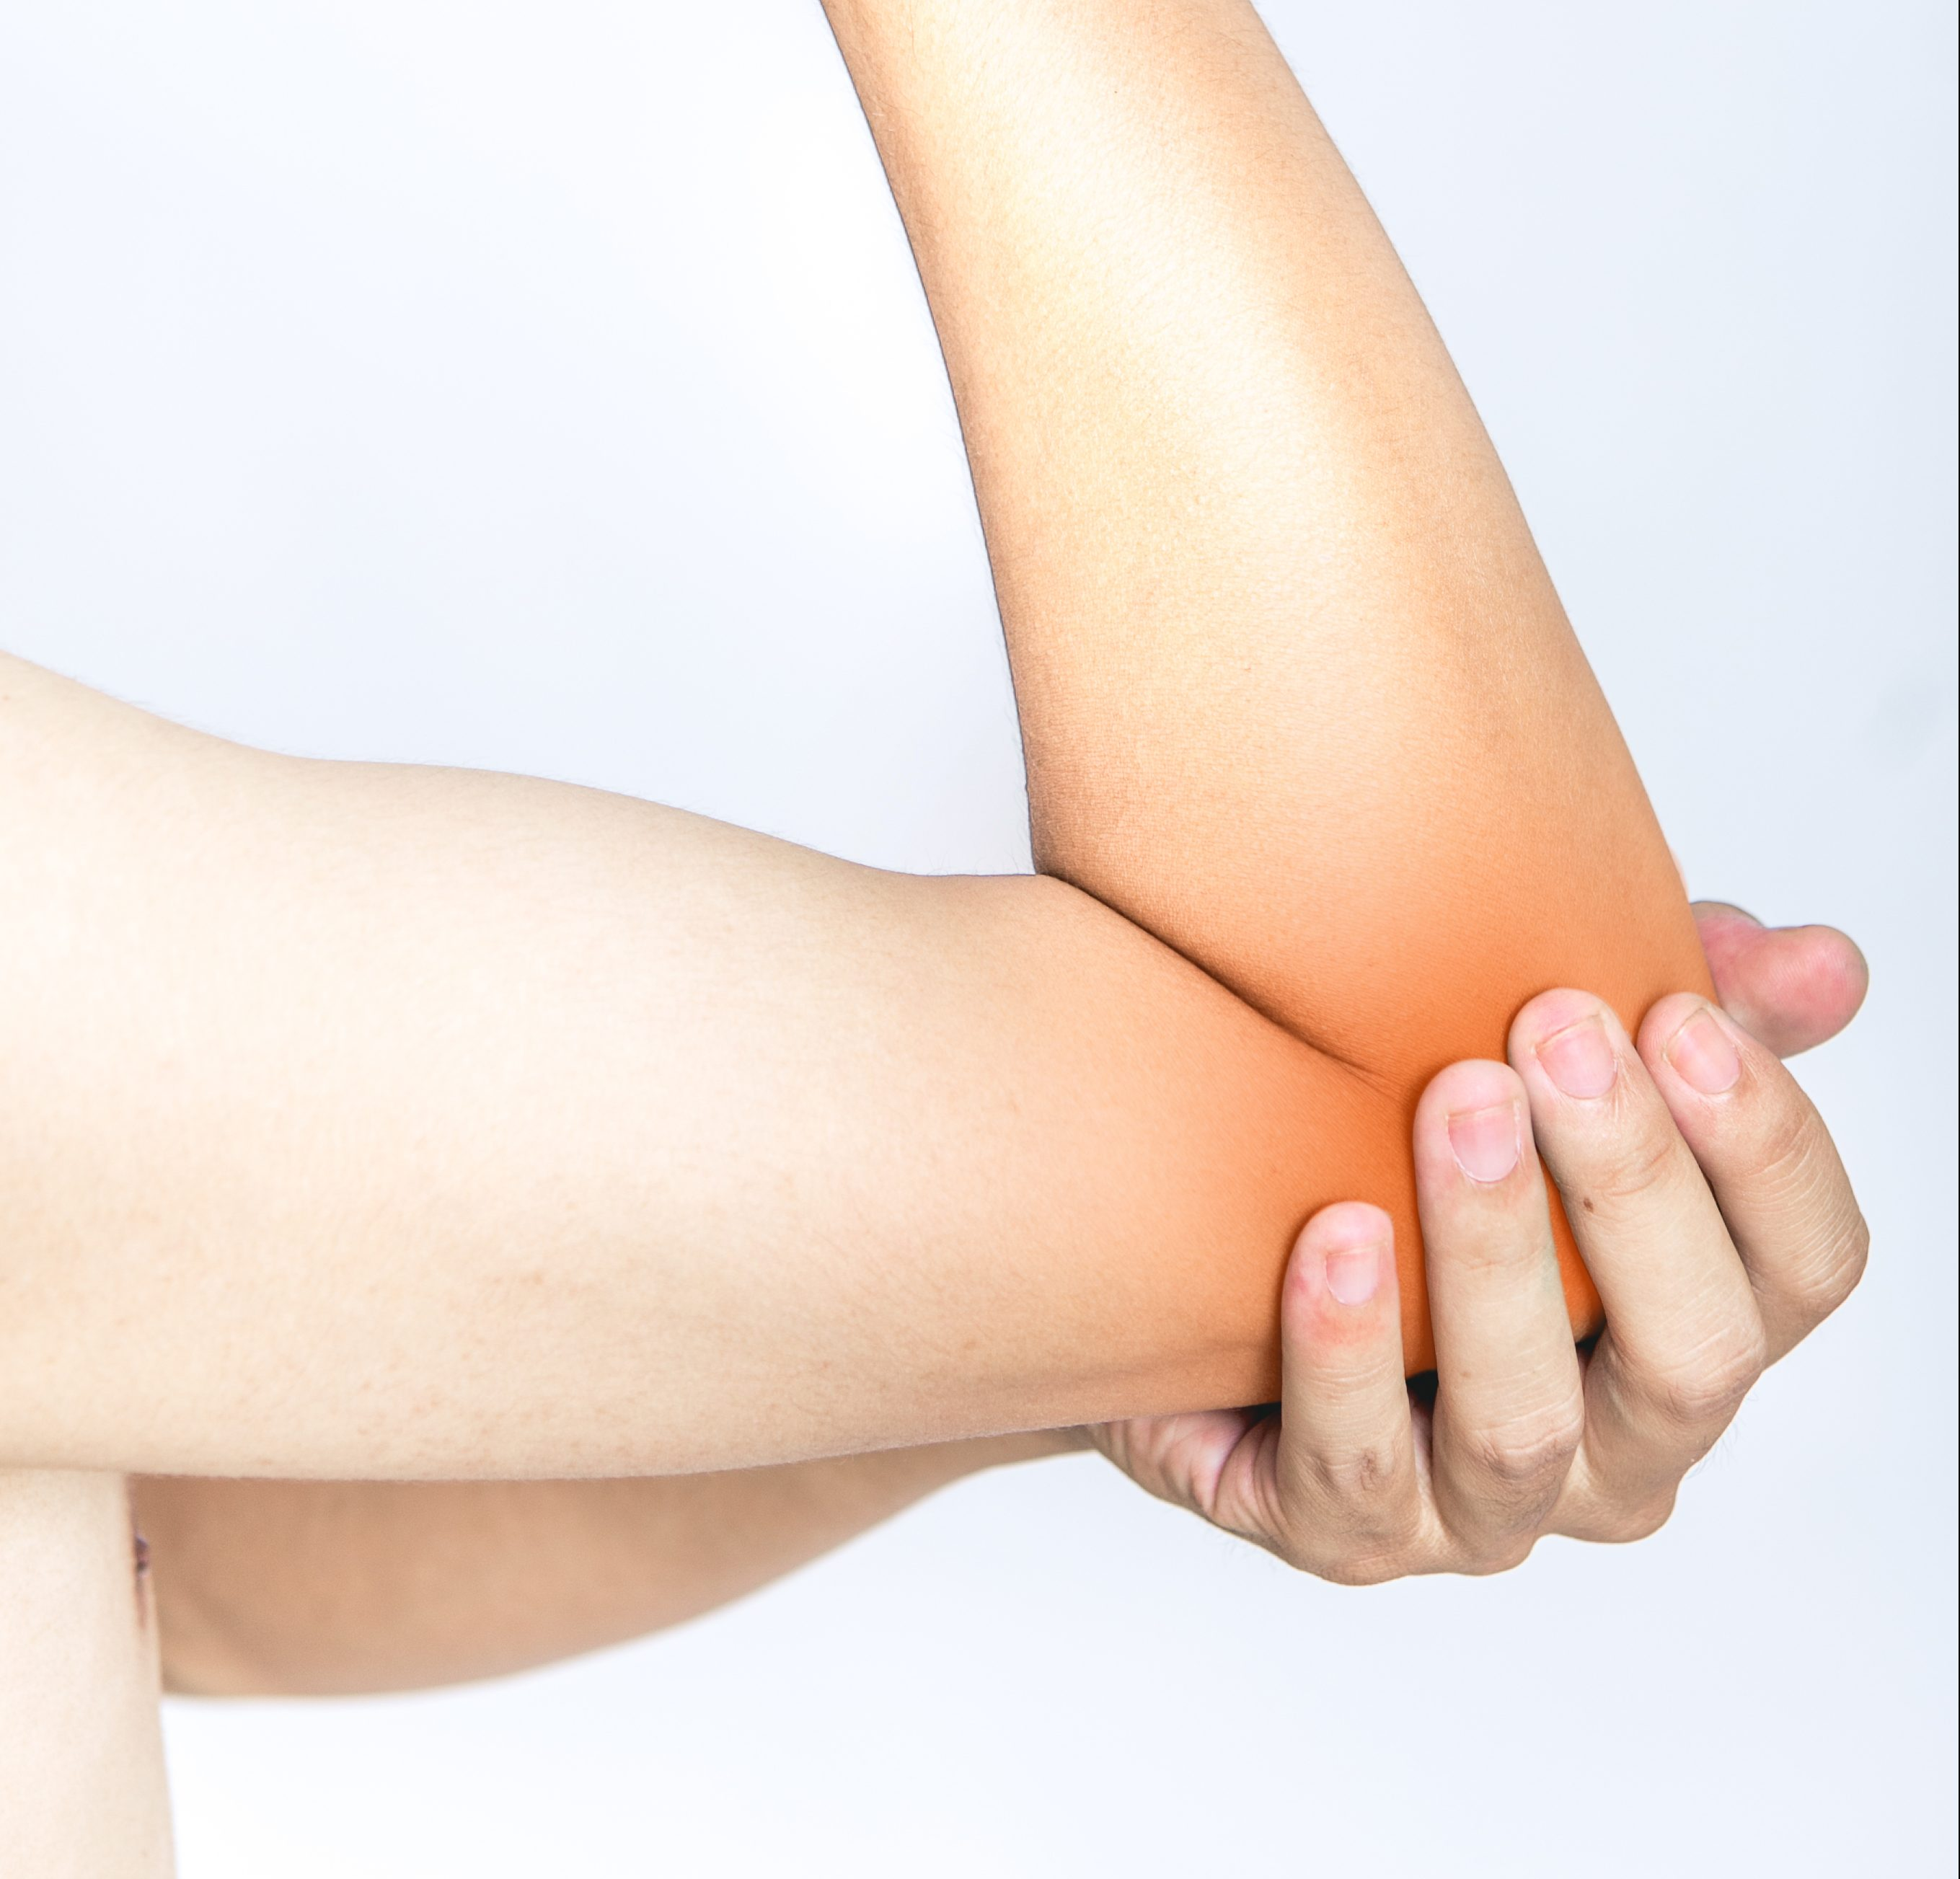 Tennis elbow pain - blog treatment and exercises